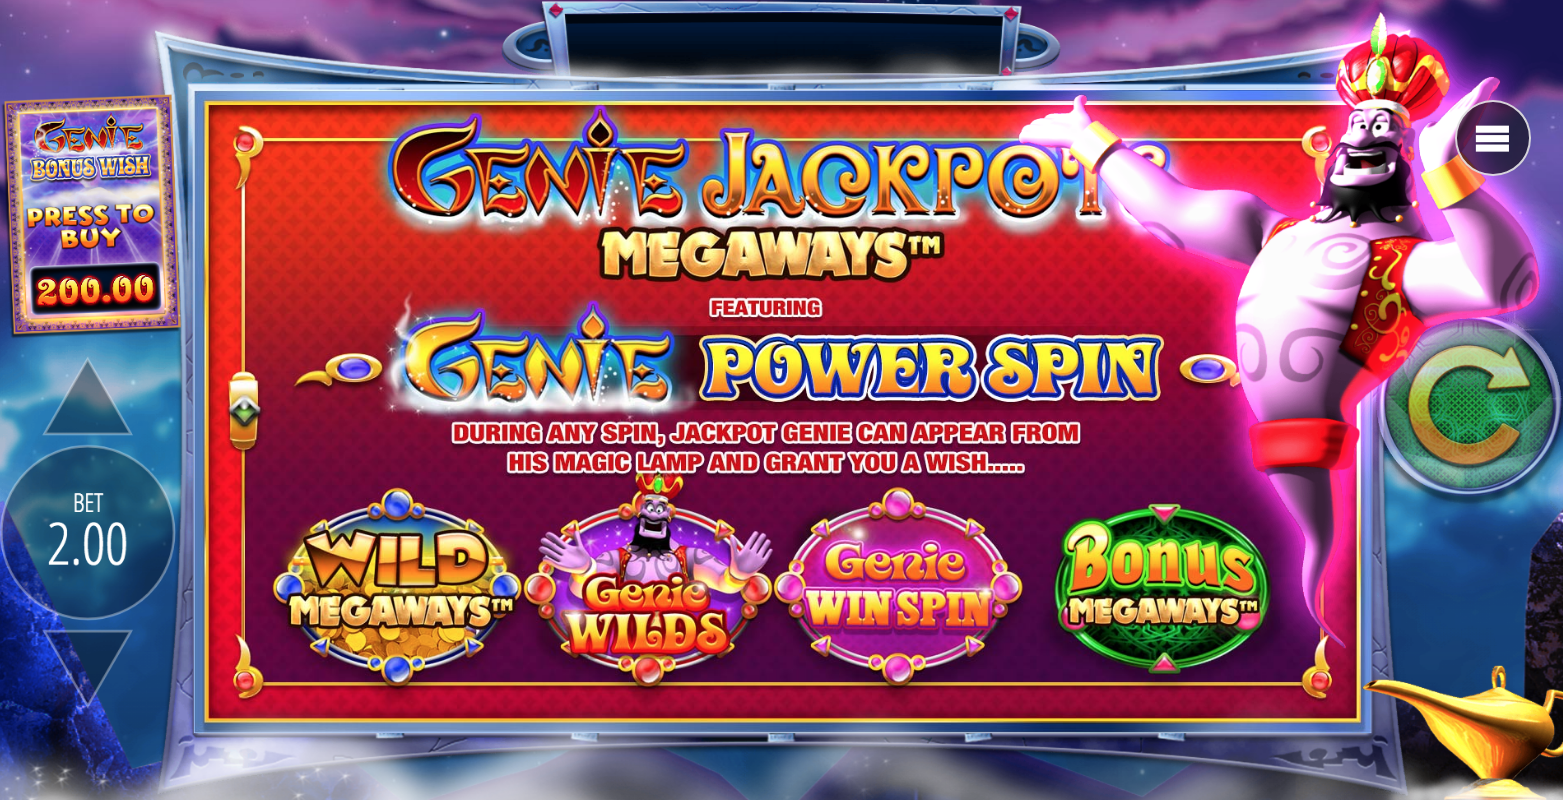 genie jackpots megaways opening screen